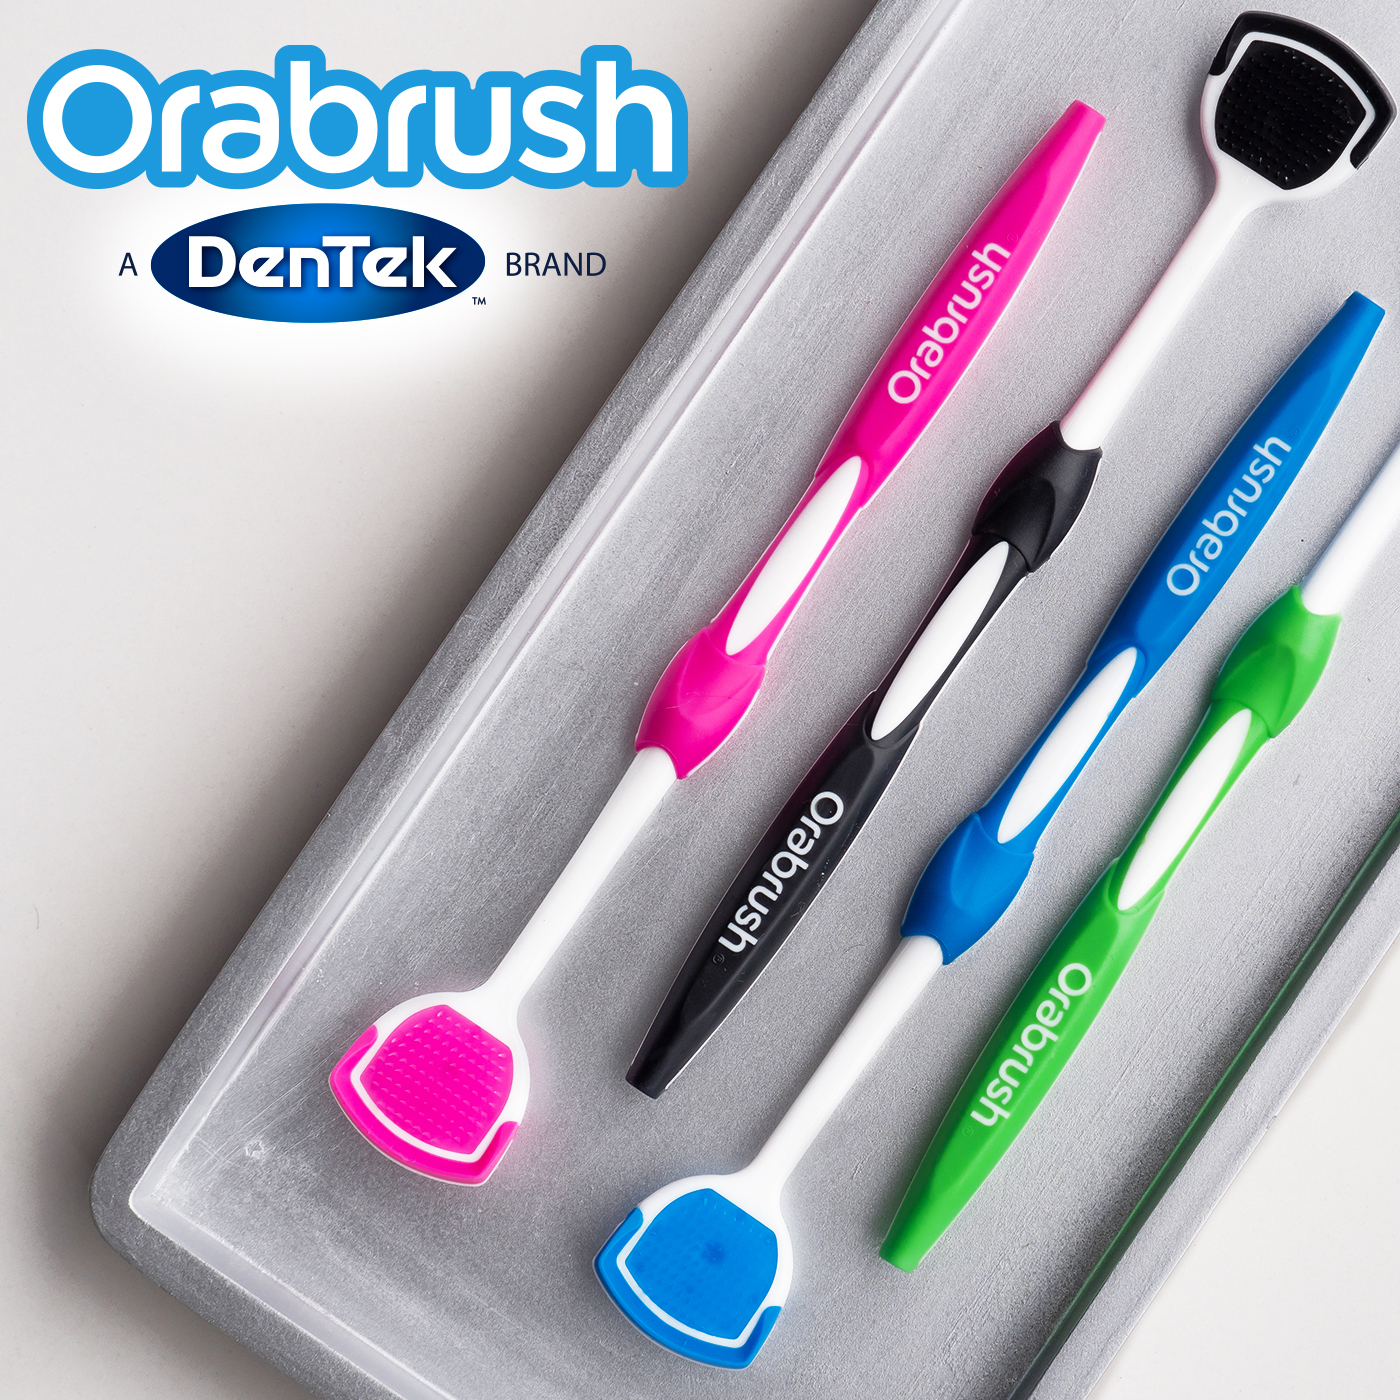 Orabrush Tongue Cleaner By Dentek Helps Fight Bad Breath 1 Count